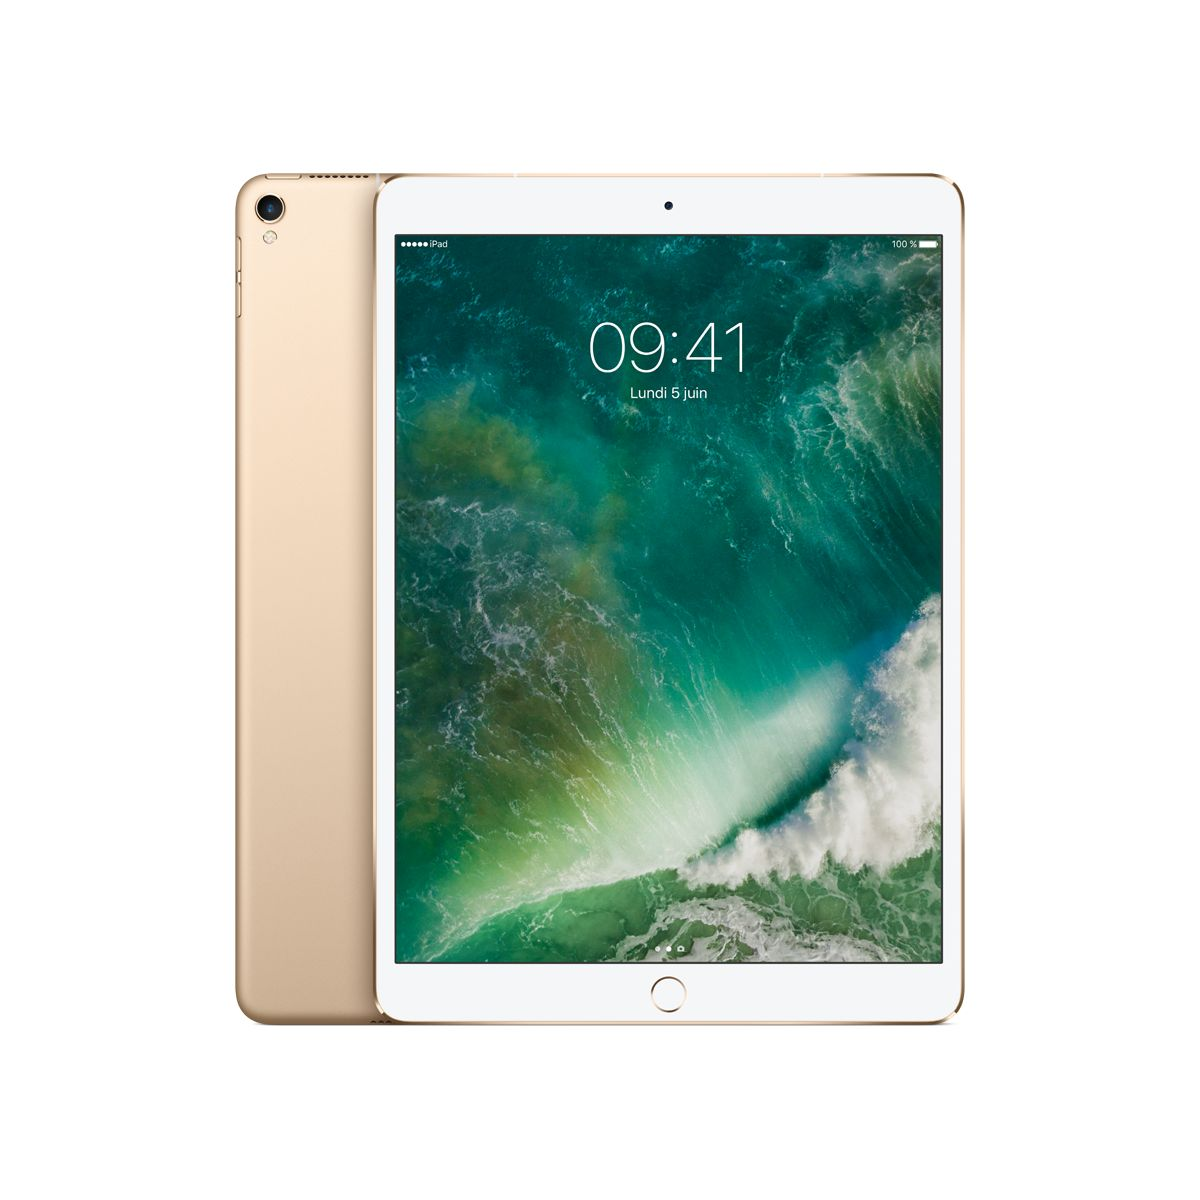 Tablette IPAD Pro 10.5 512Go Cel Or (photo)